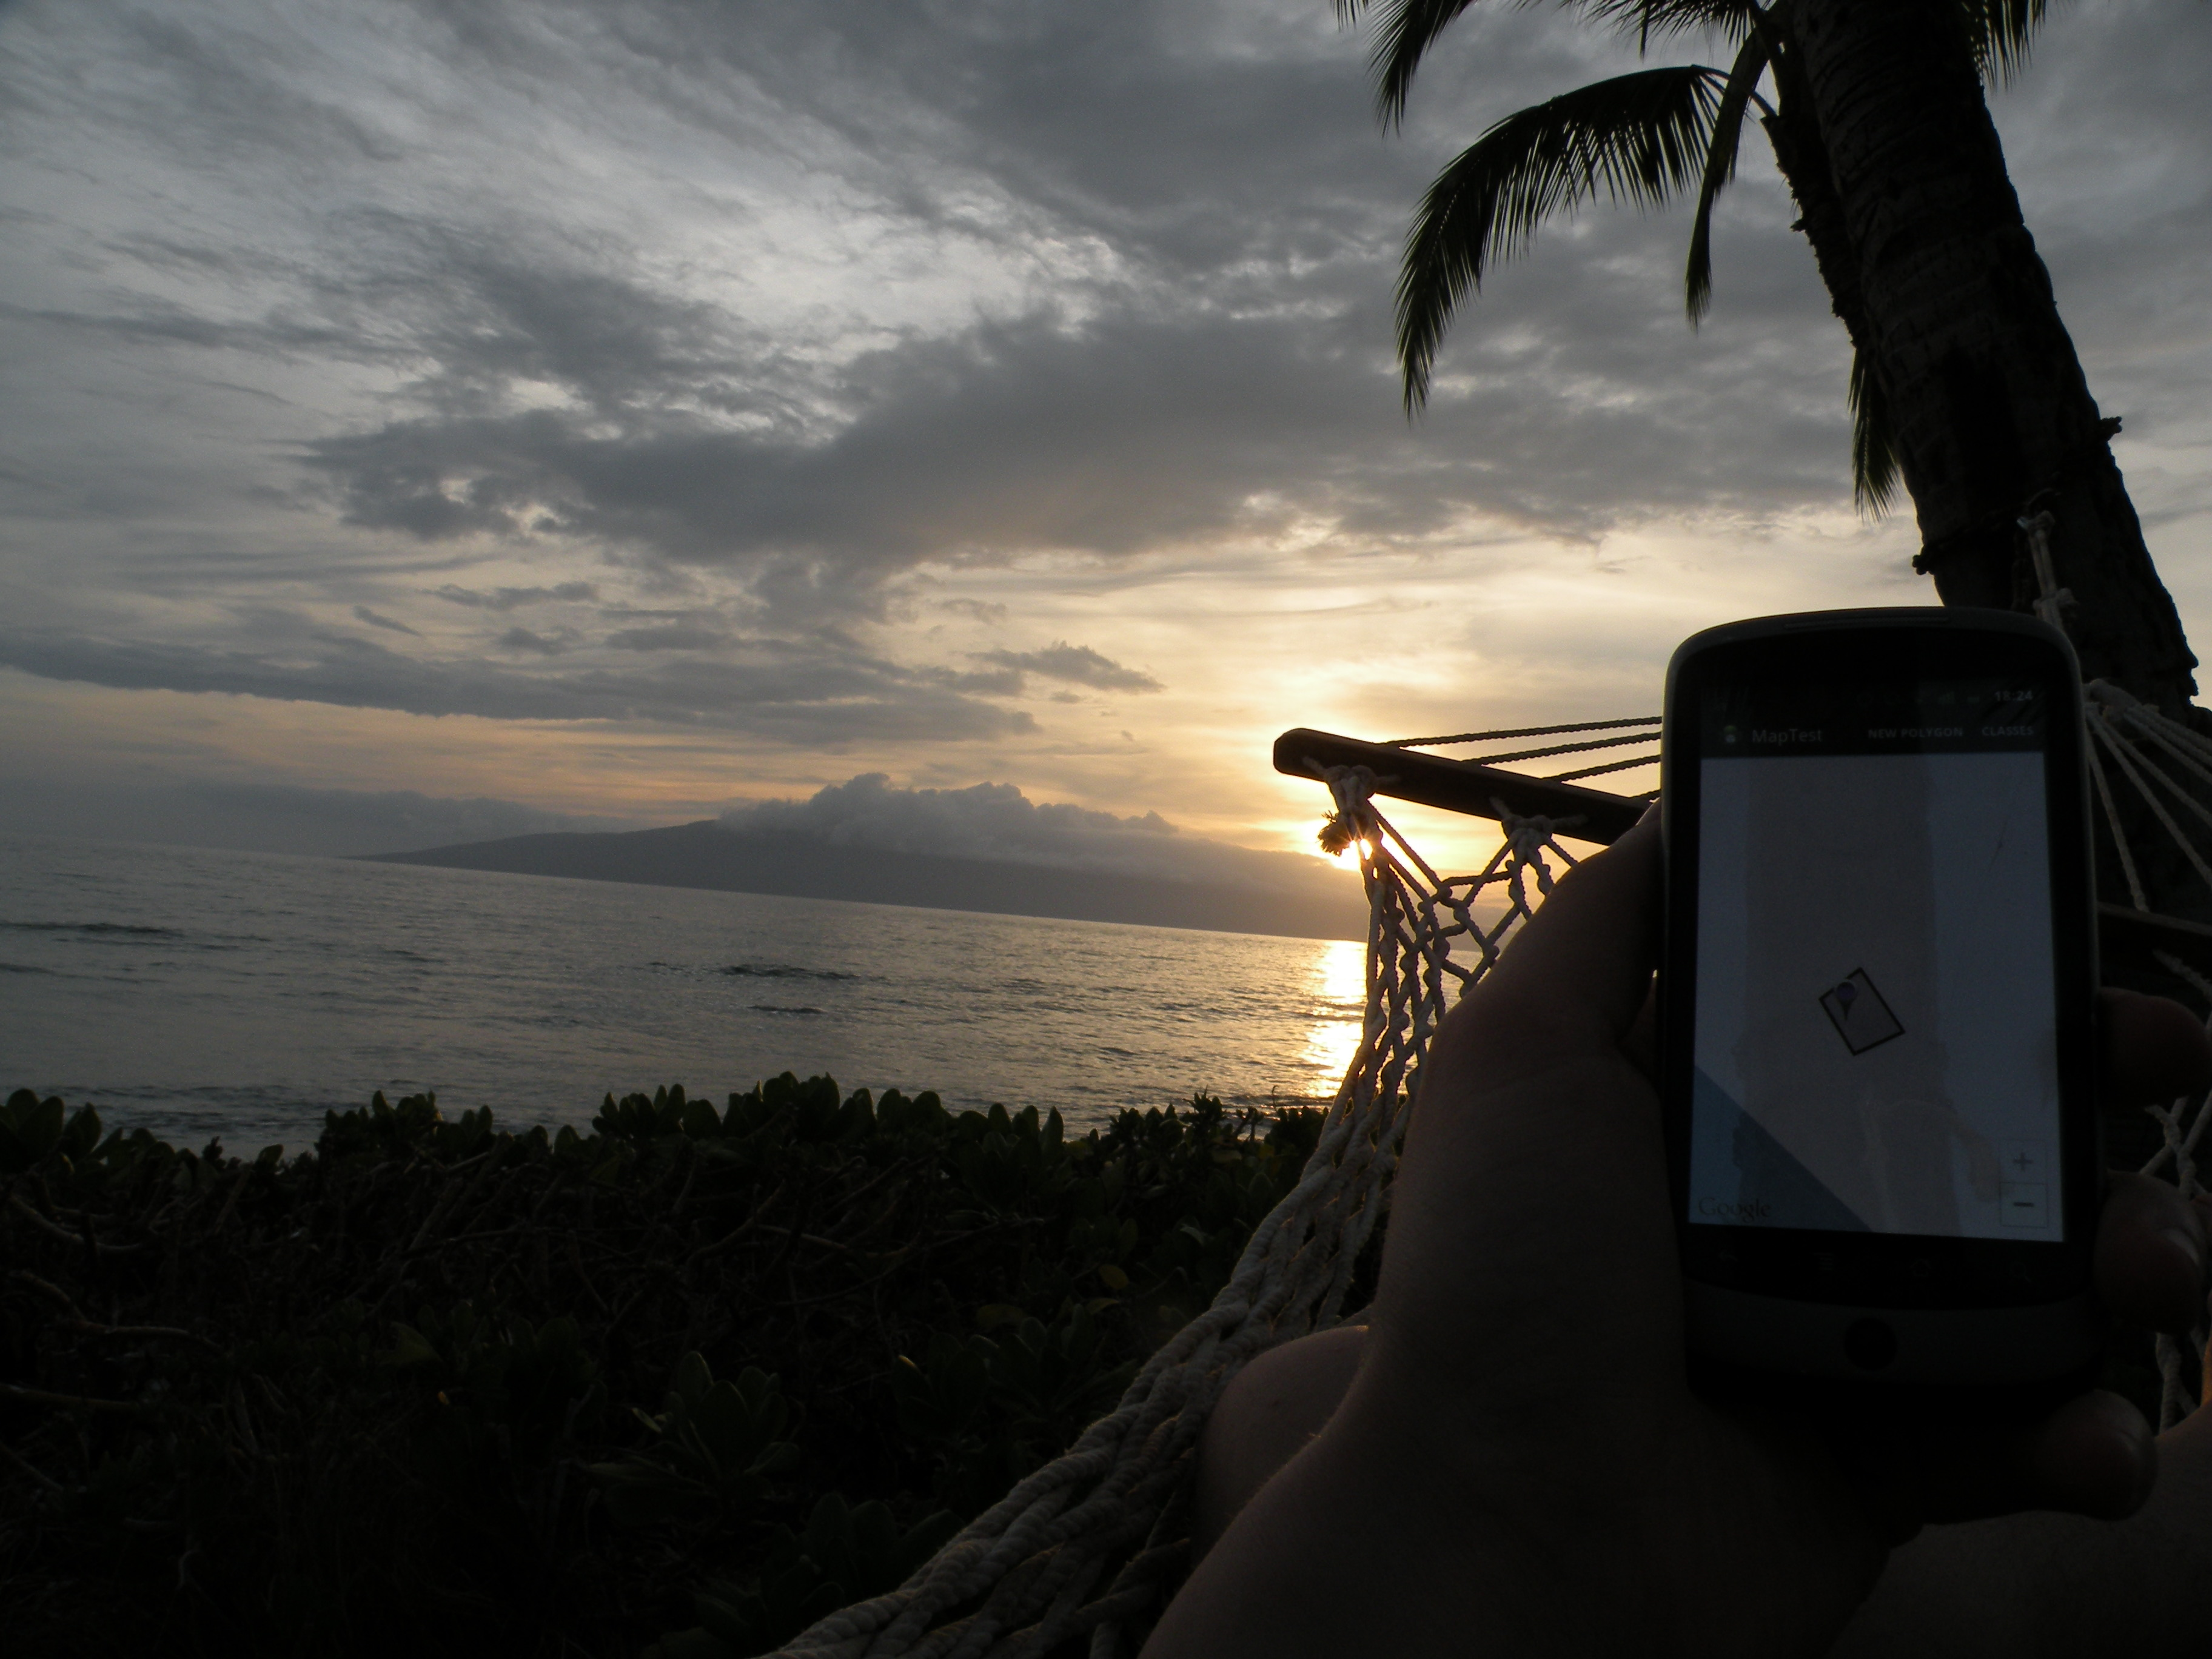 Demo from hammock of geofencing on Android with sunset int he background.